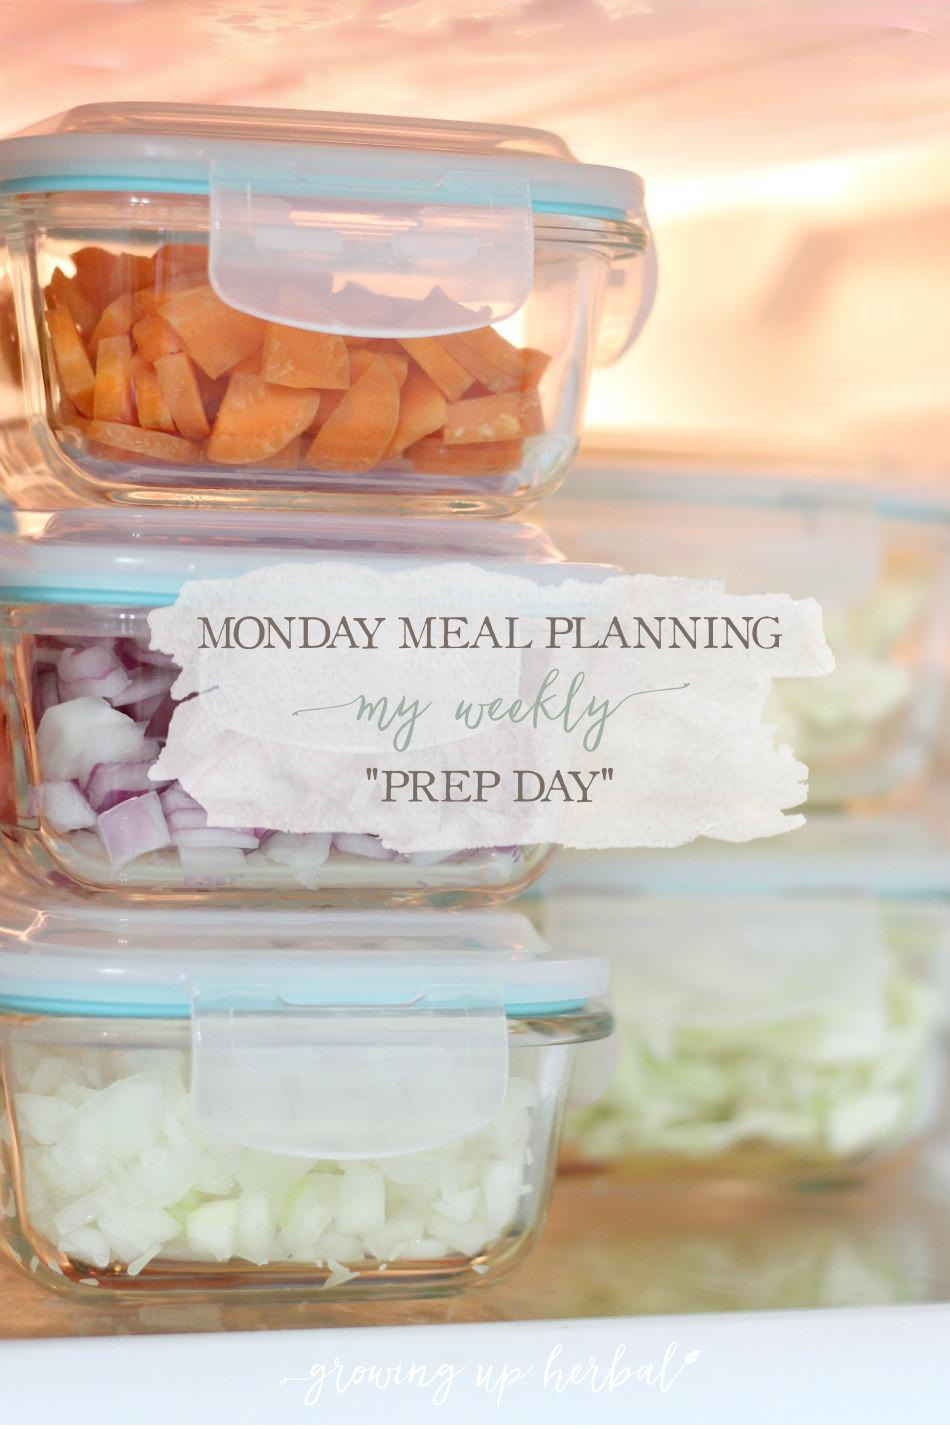 "Meal Planning Monday: My Weekly ""Prep Day"" 